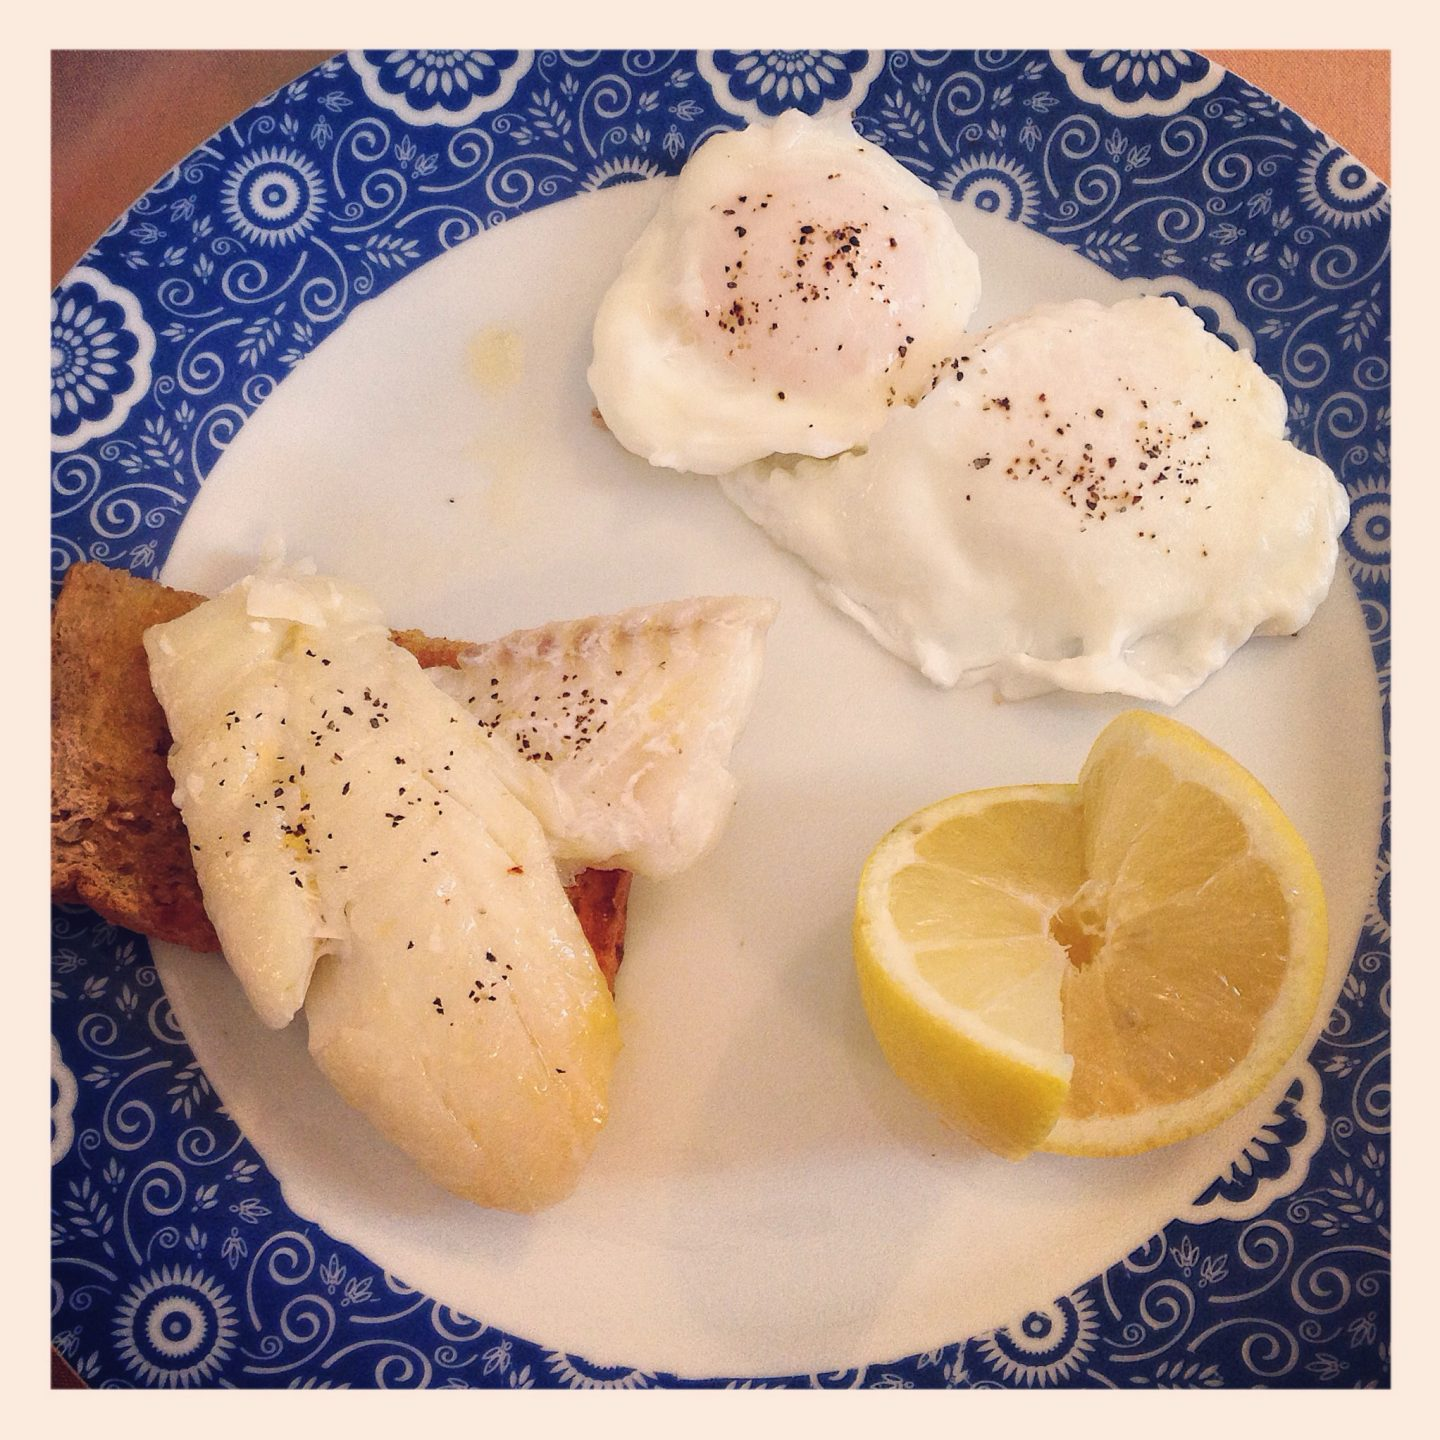 Smoked haddock and poached eggs